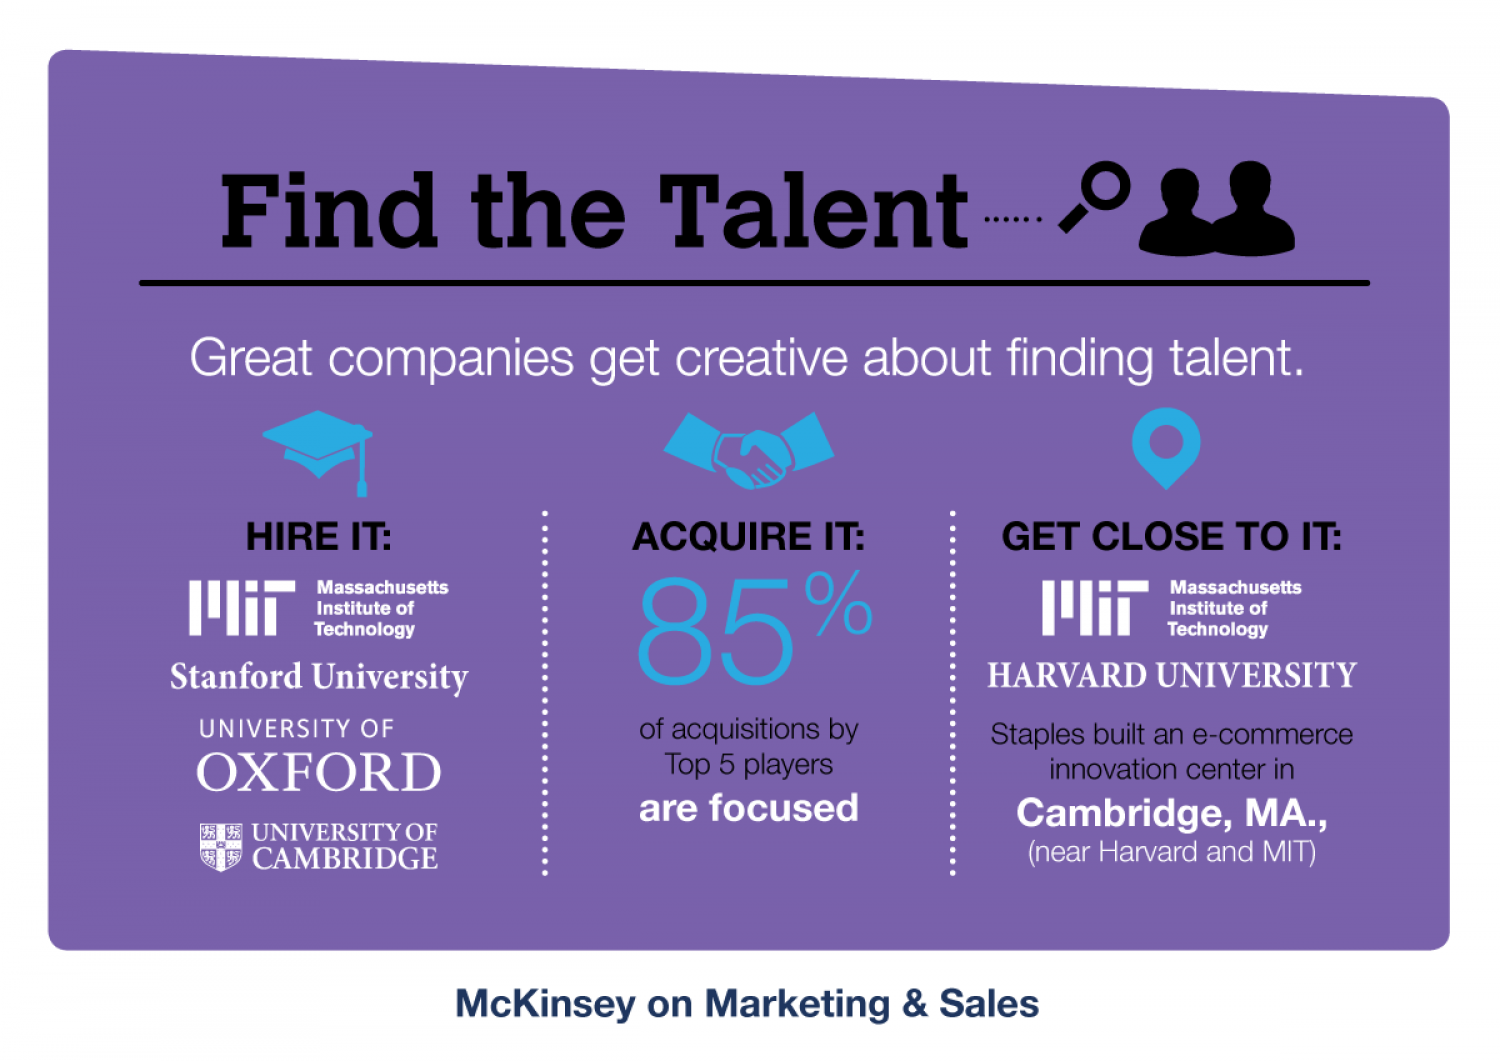 Find the Talent Infographic